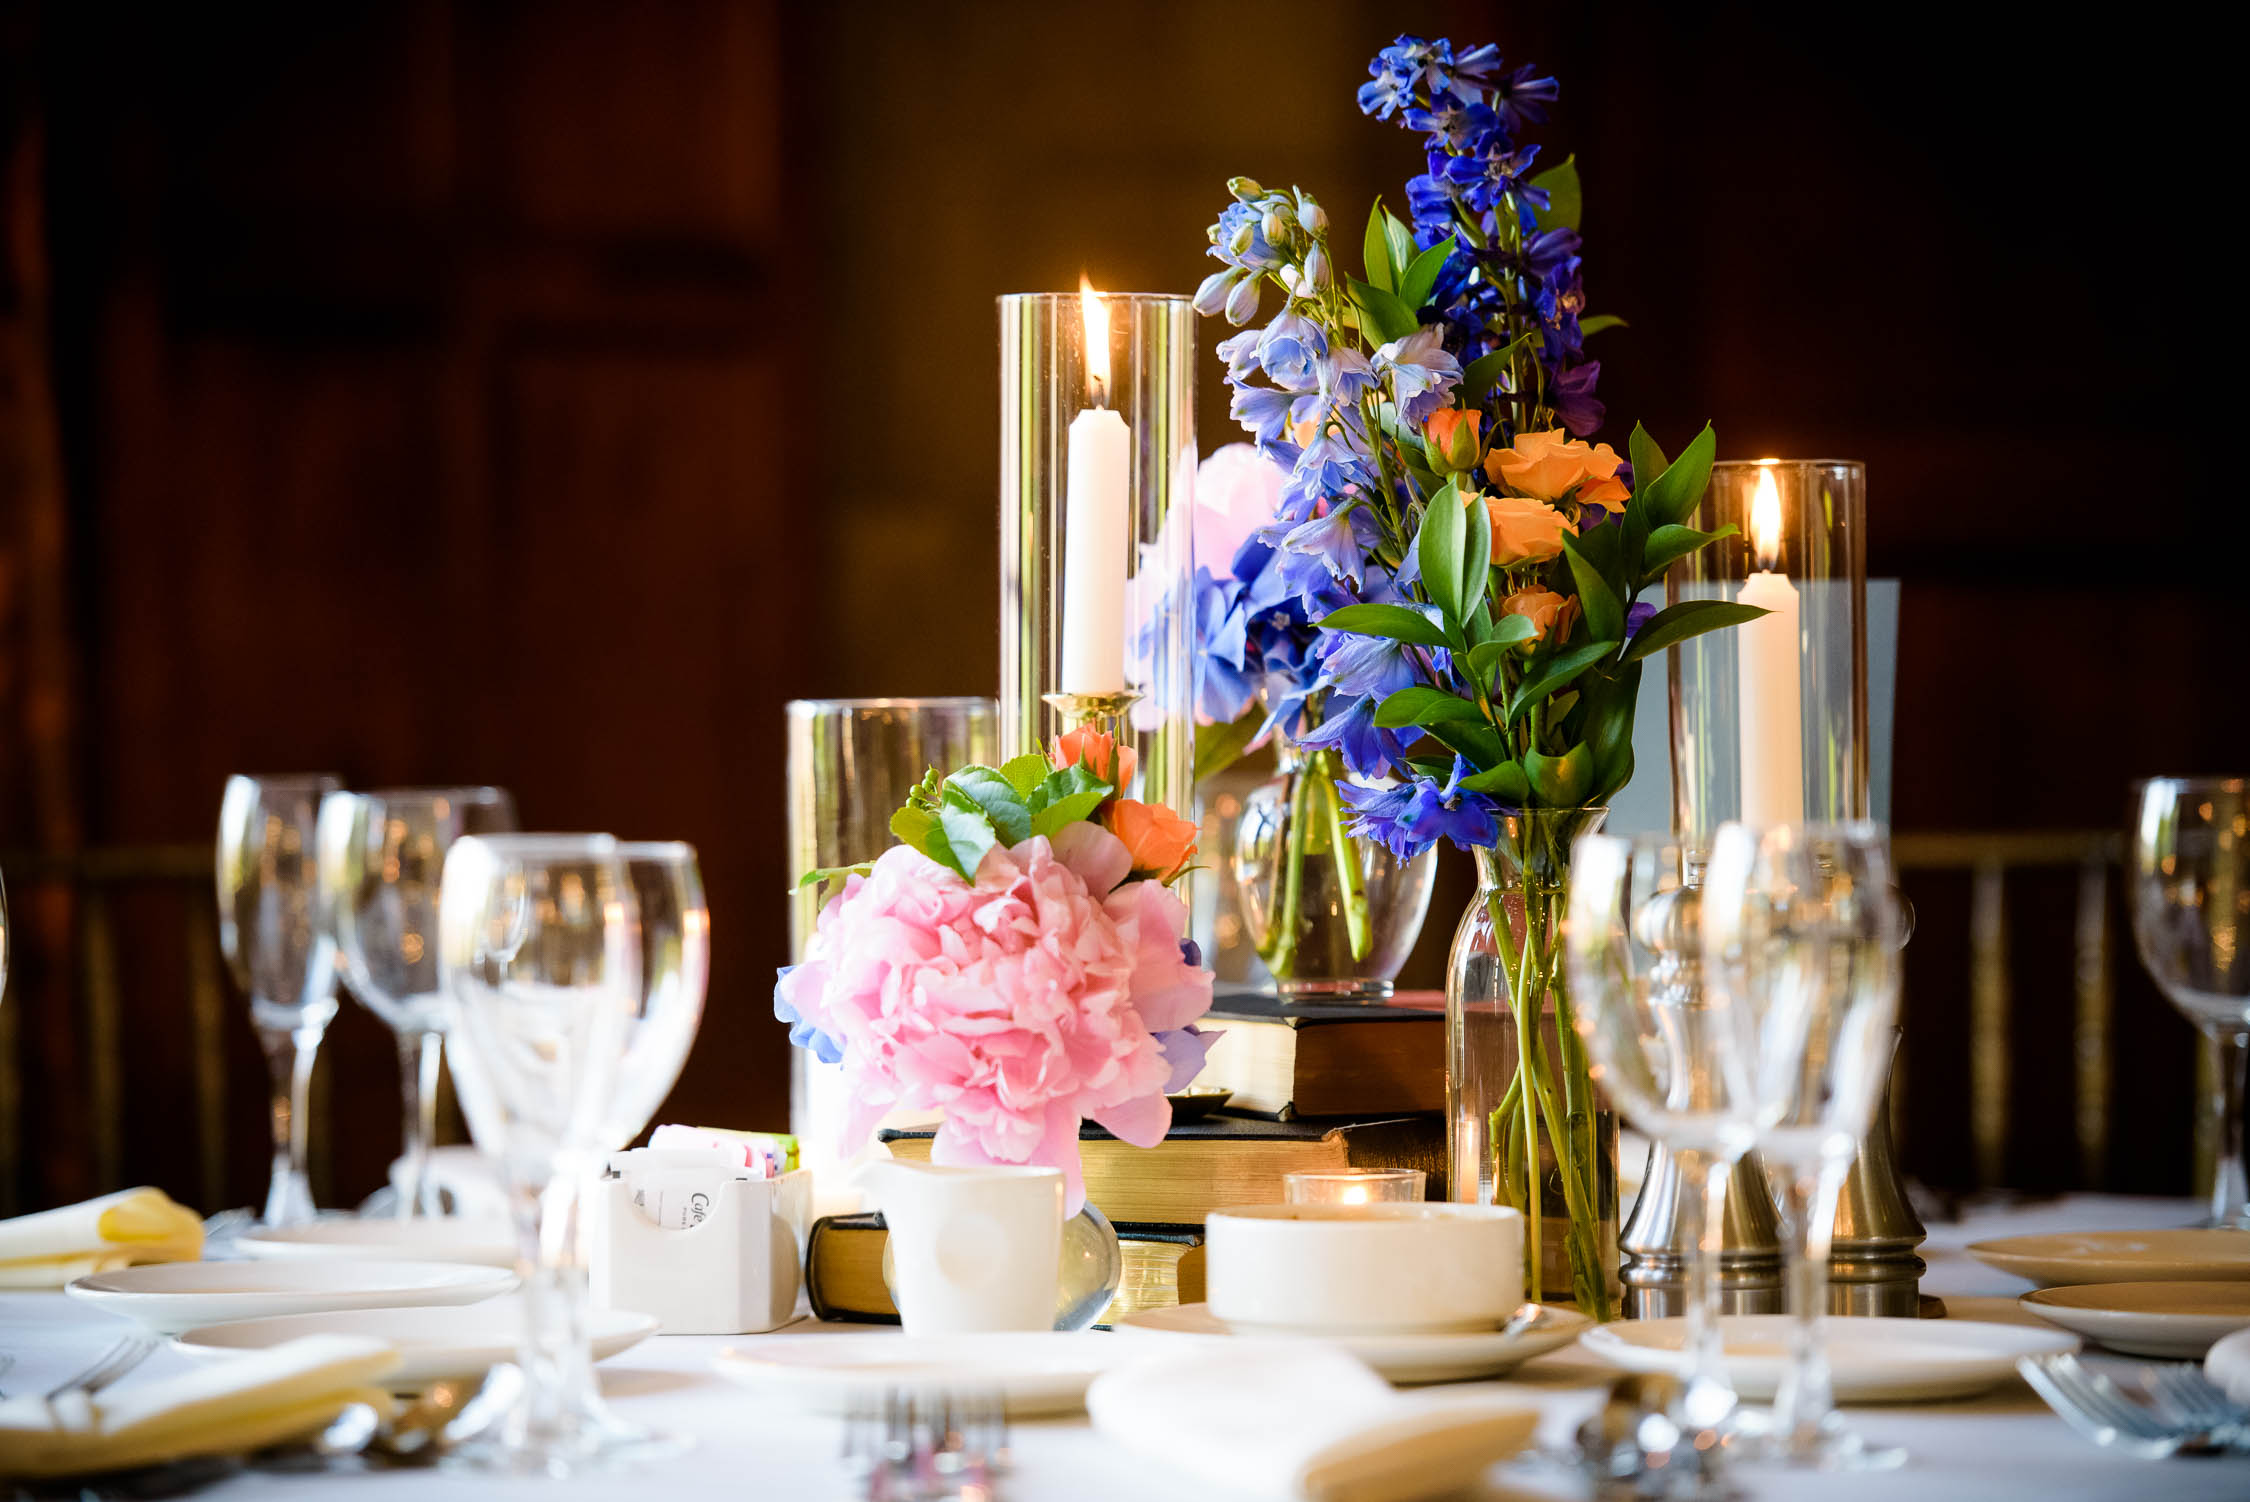 Floral and table setting by A Stem Above for a wedding at the Quadrangle Club of Chicago.